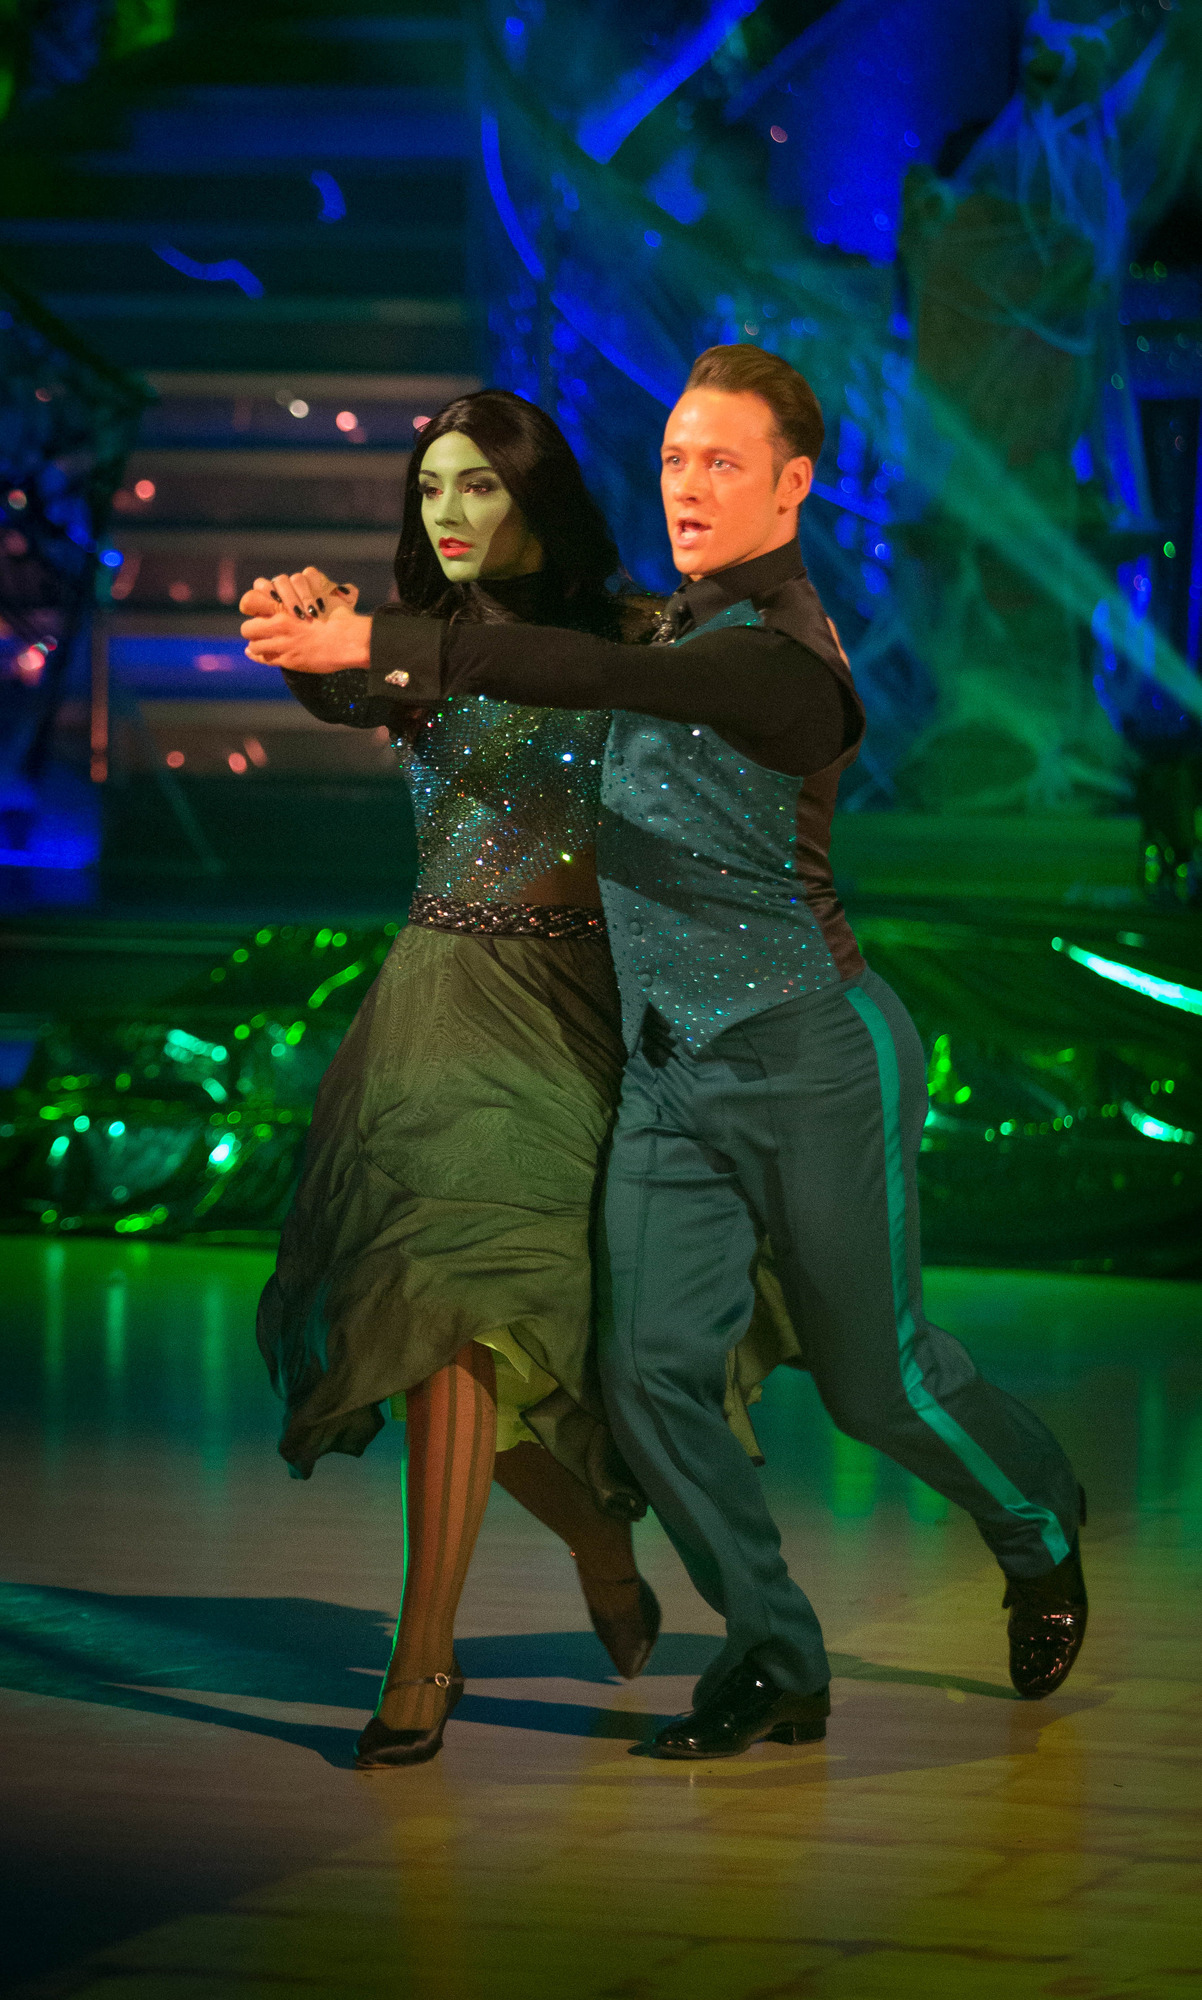 Strictly Come Dancing 2014: Frankie Bridge got an actual 10, as opposed to a 'Donny 10'